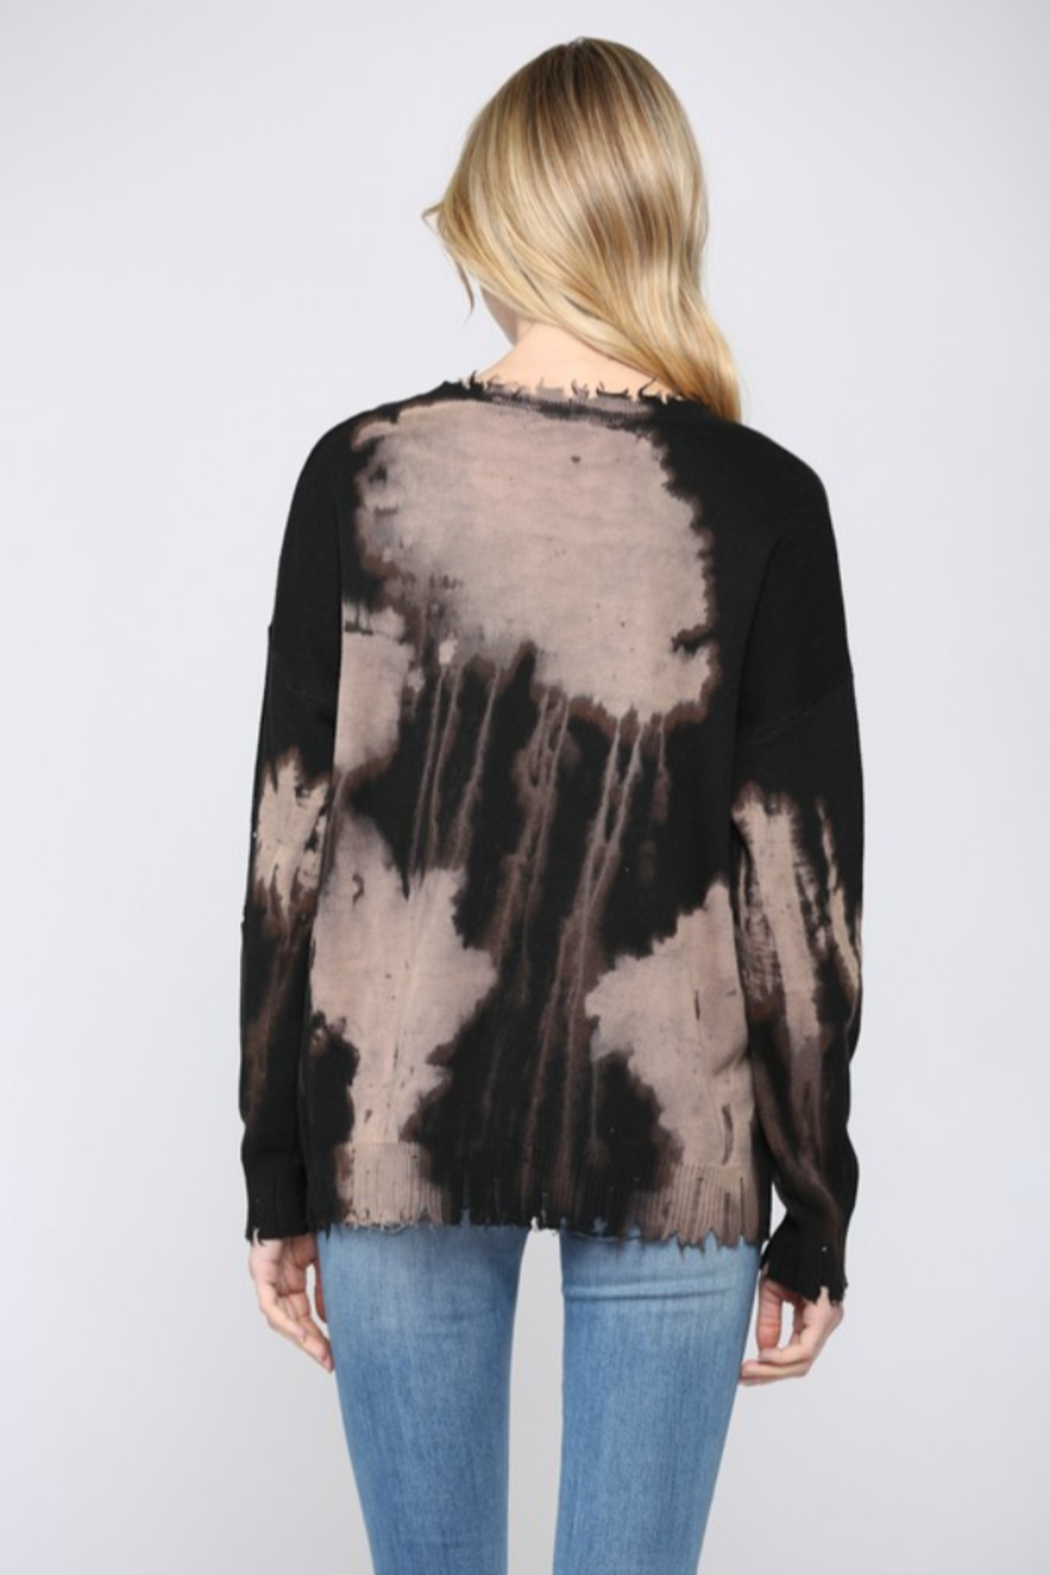 Fate Inc. Bleached Distressed Pullover Sweater Top - Side Cropped Image